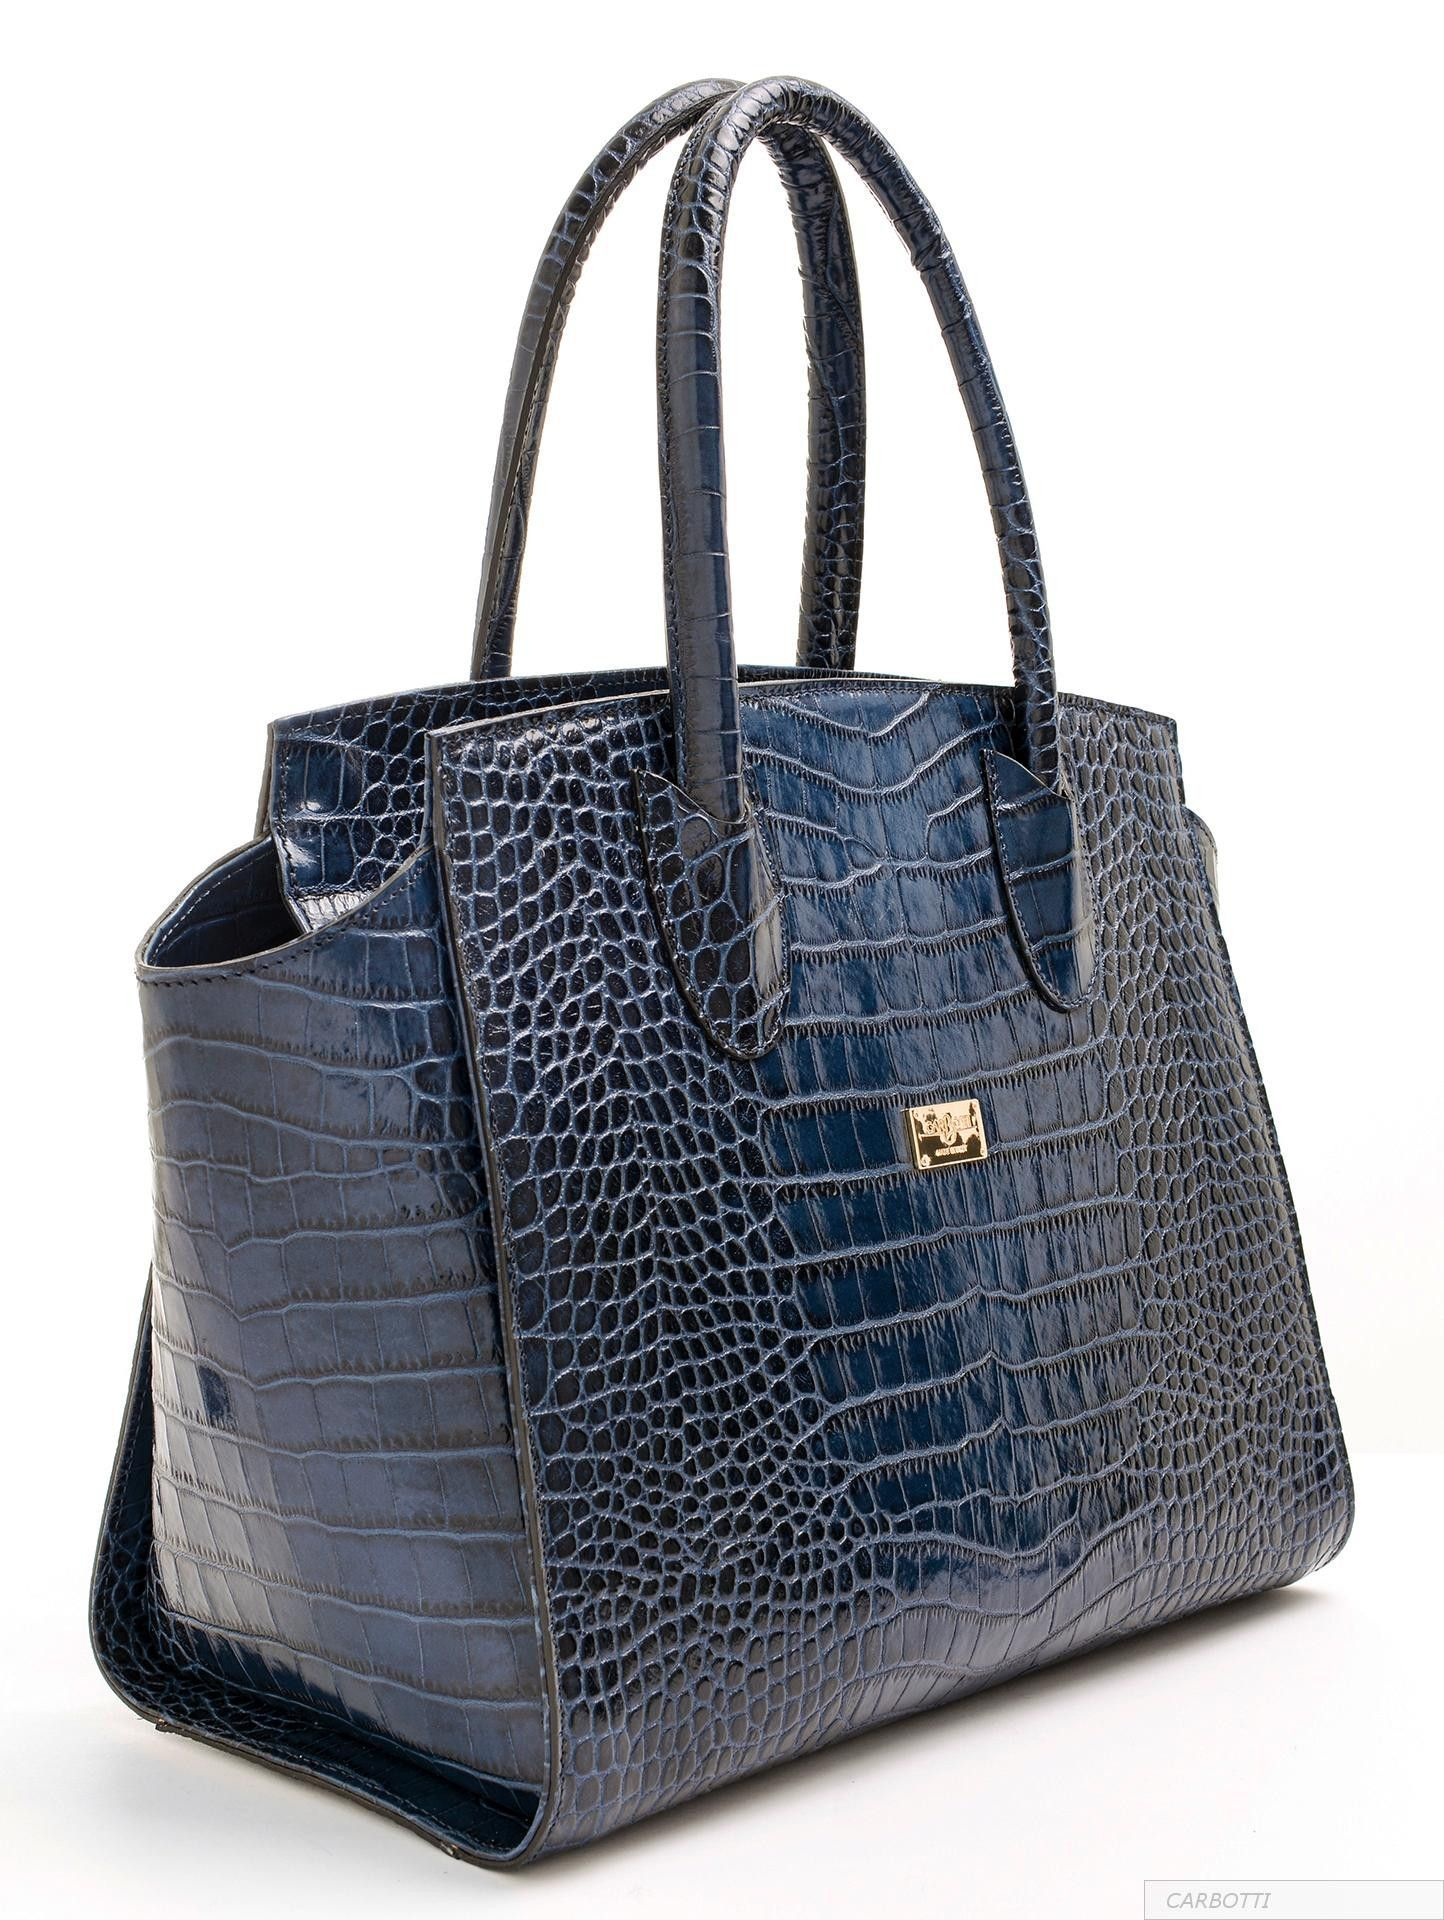 Cocco Rico Blue Luxury Handbag In Italian Leather By Carbotti